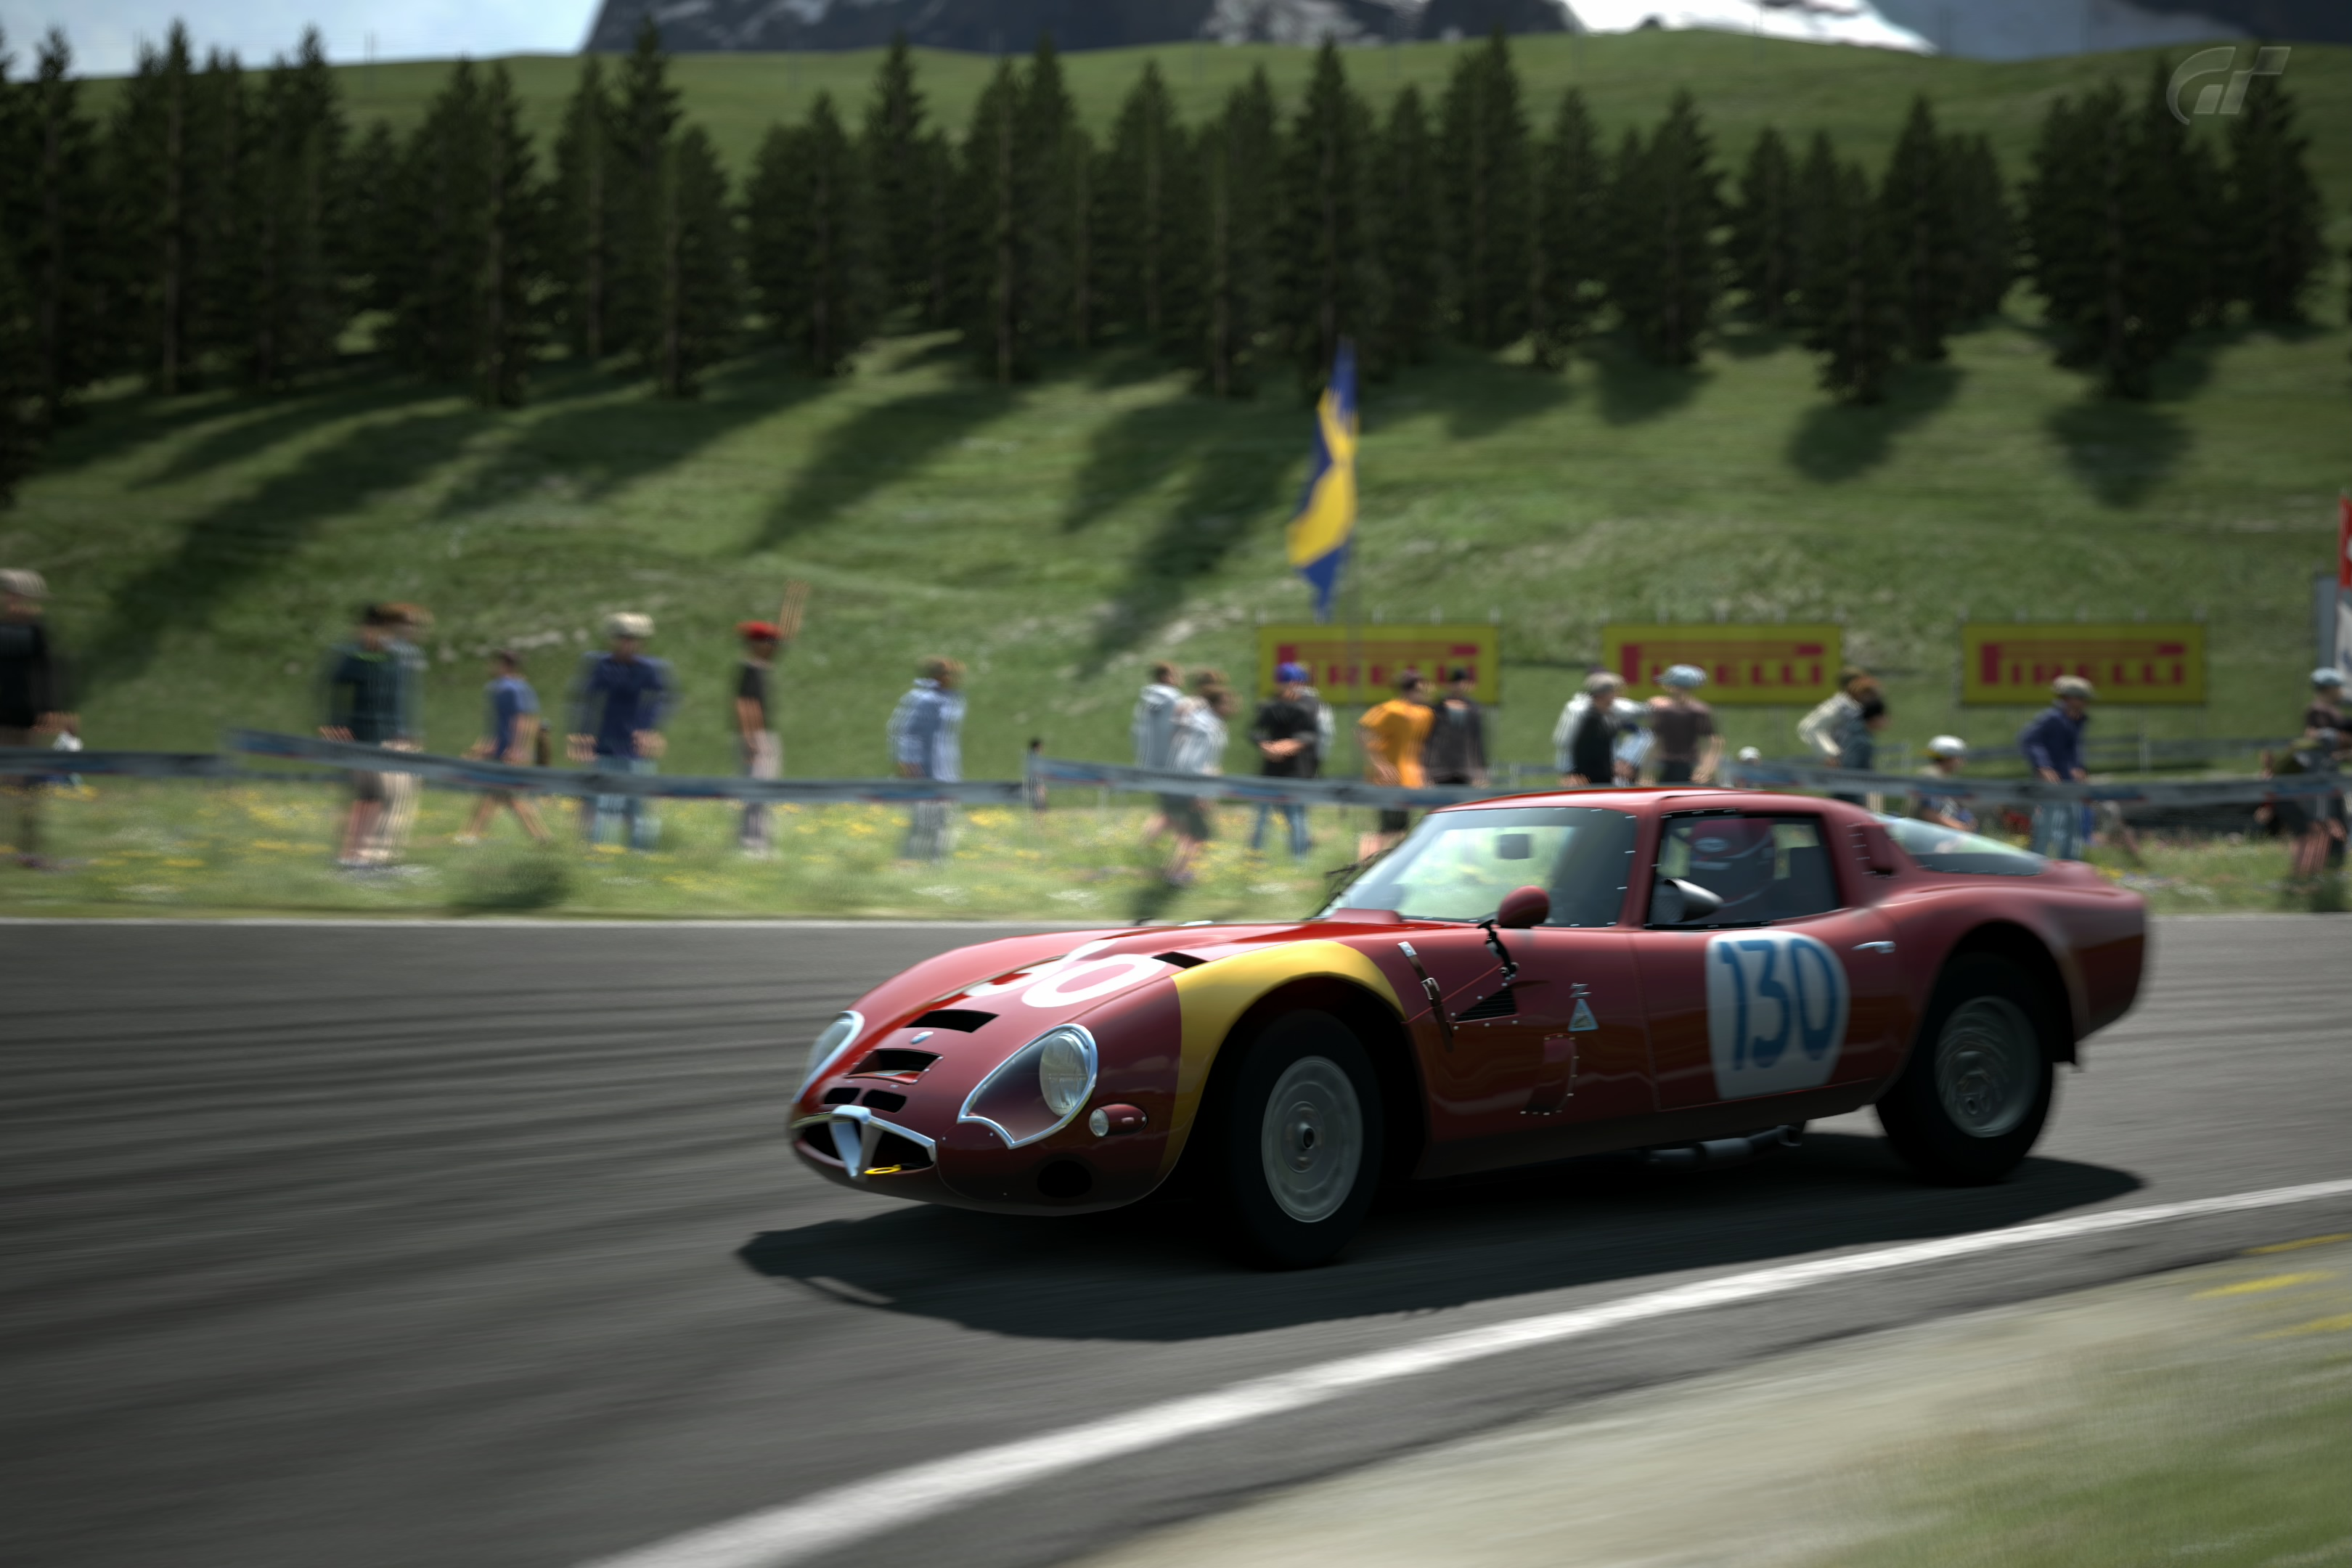 Alfa giulia tz2 photo